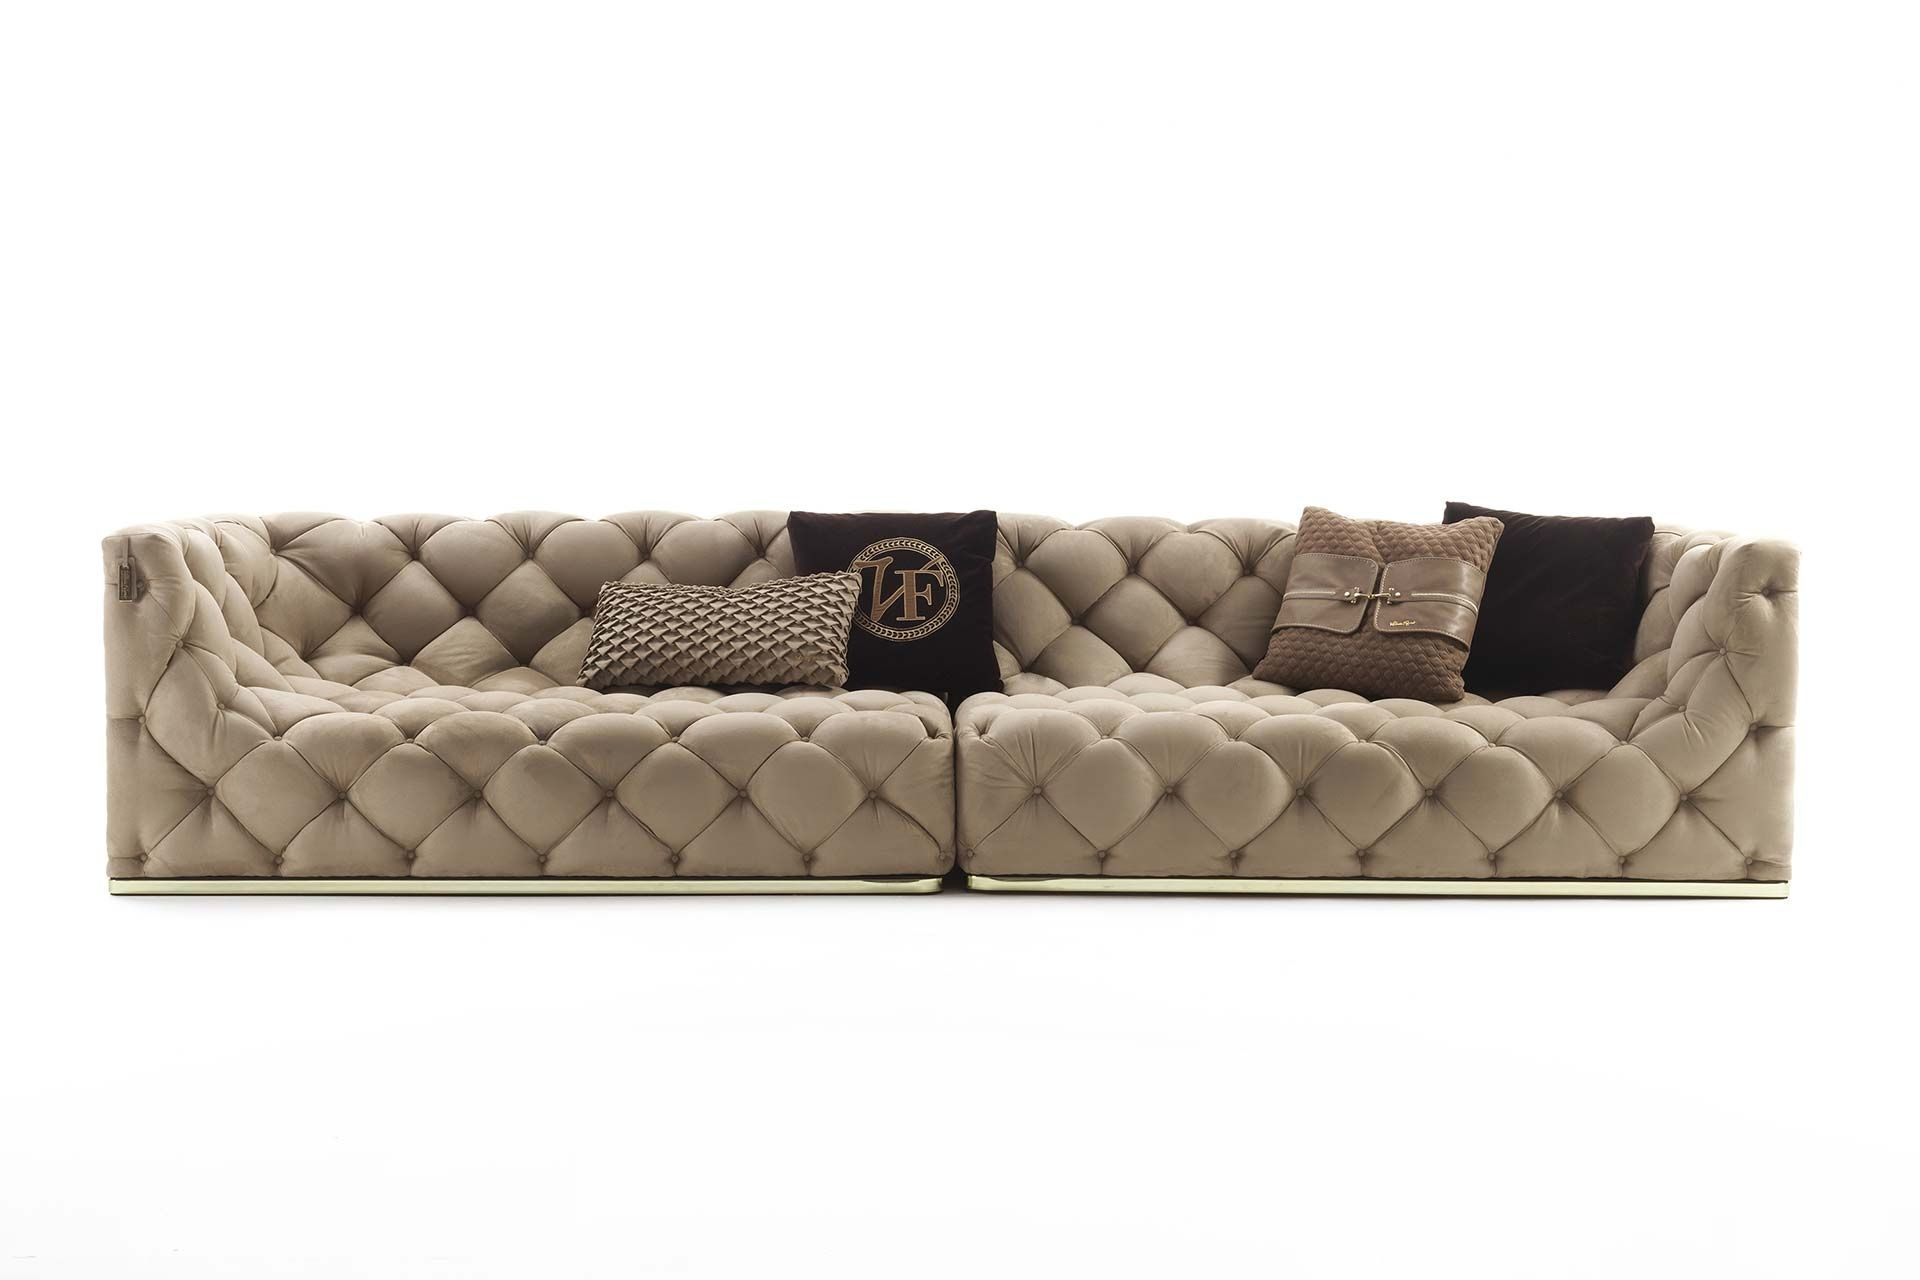 an example of all round button tufted upholstery a finely original rh pinterest com